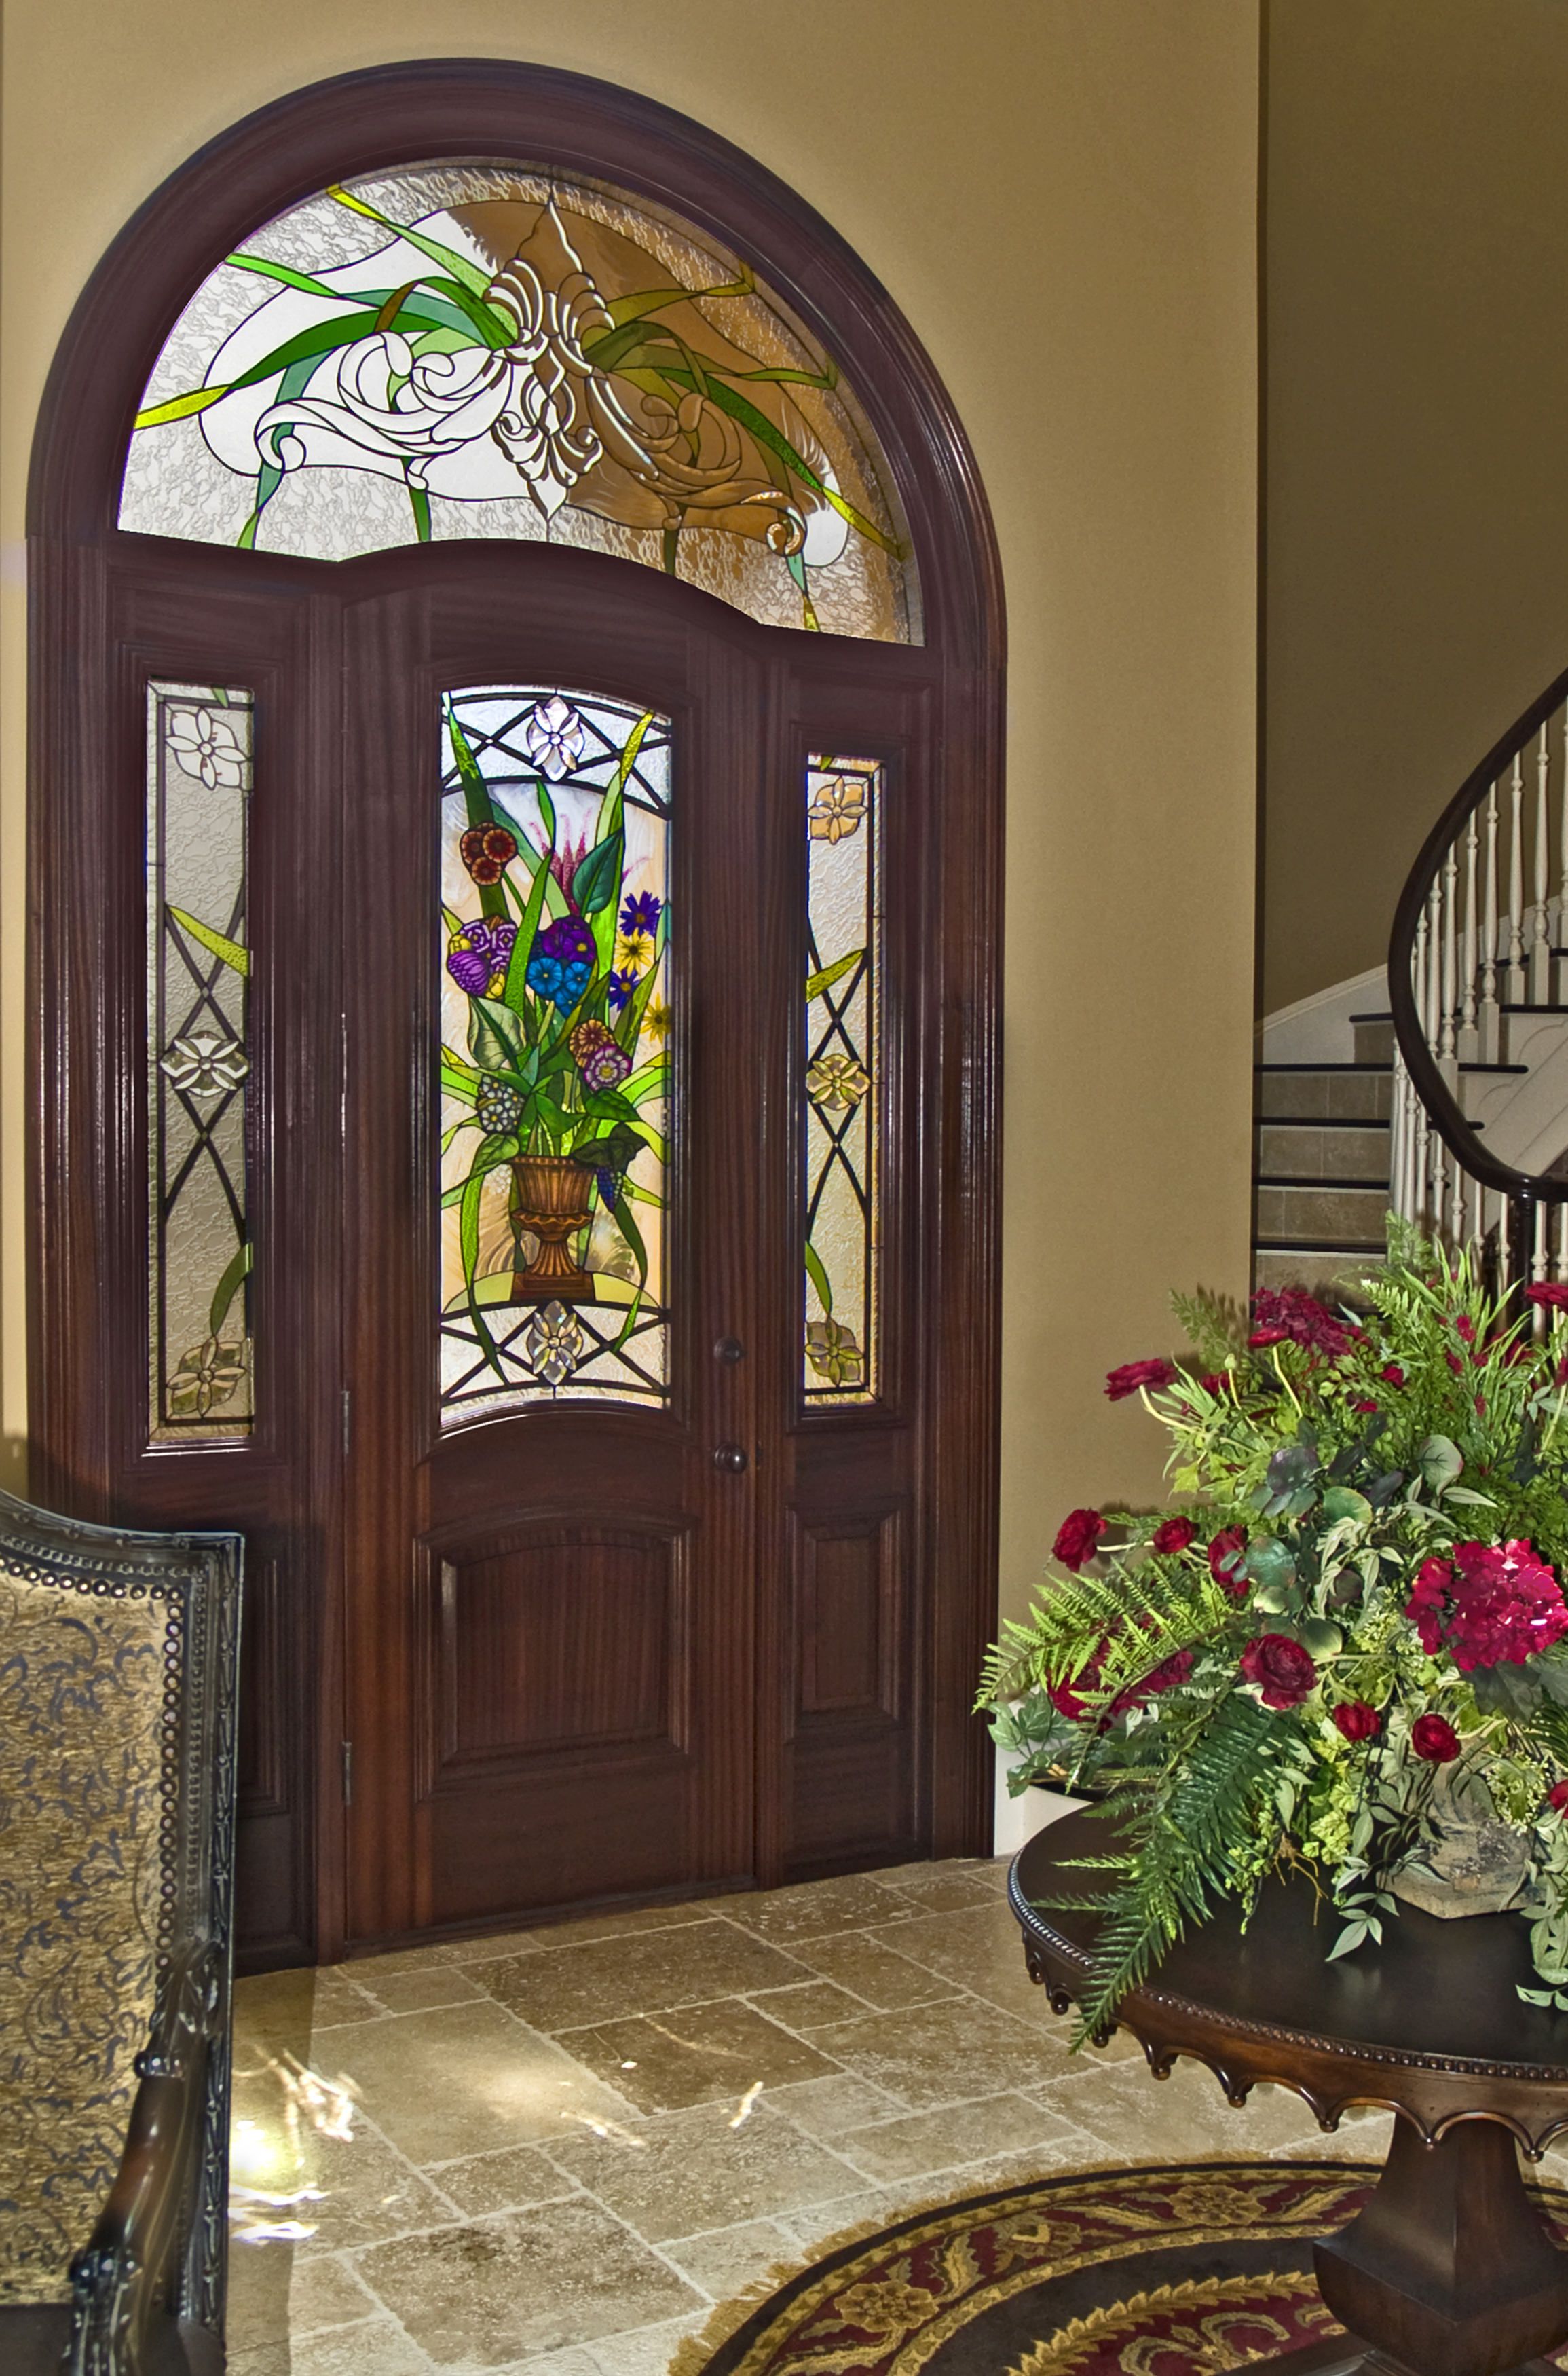 Custom Italianate entrance design featuring hand painted and fired elements